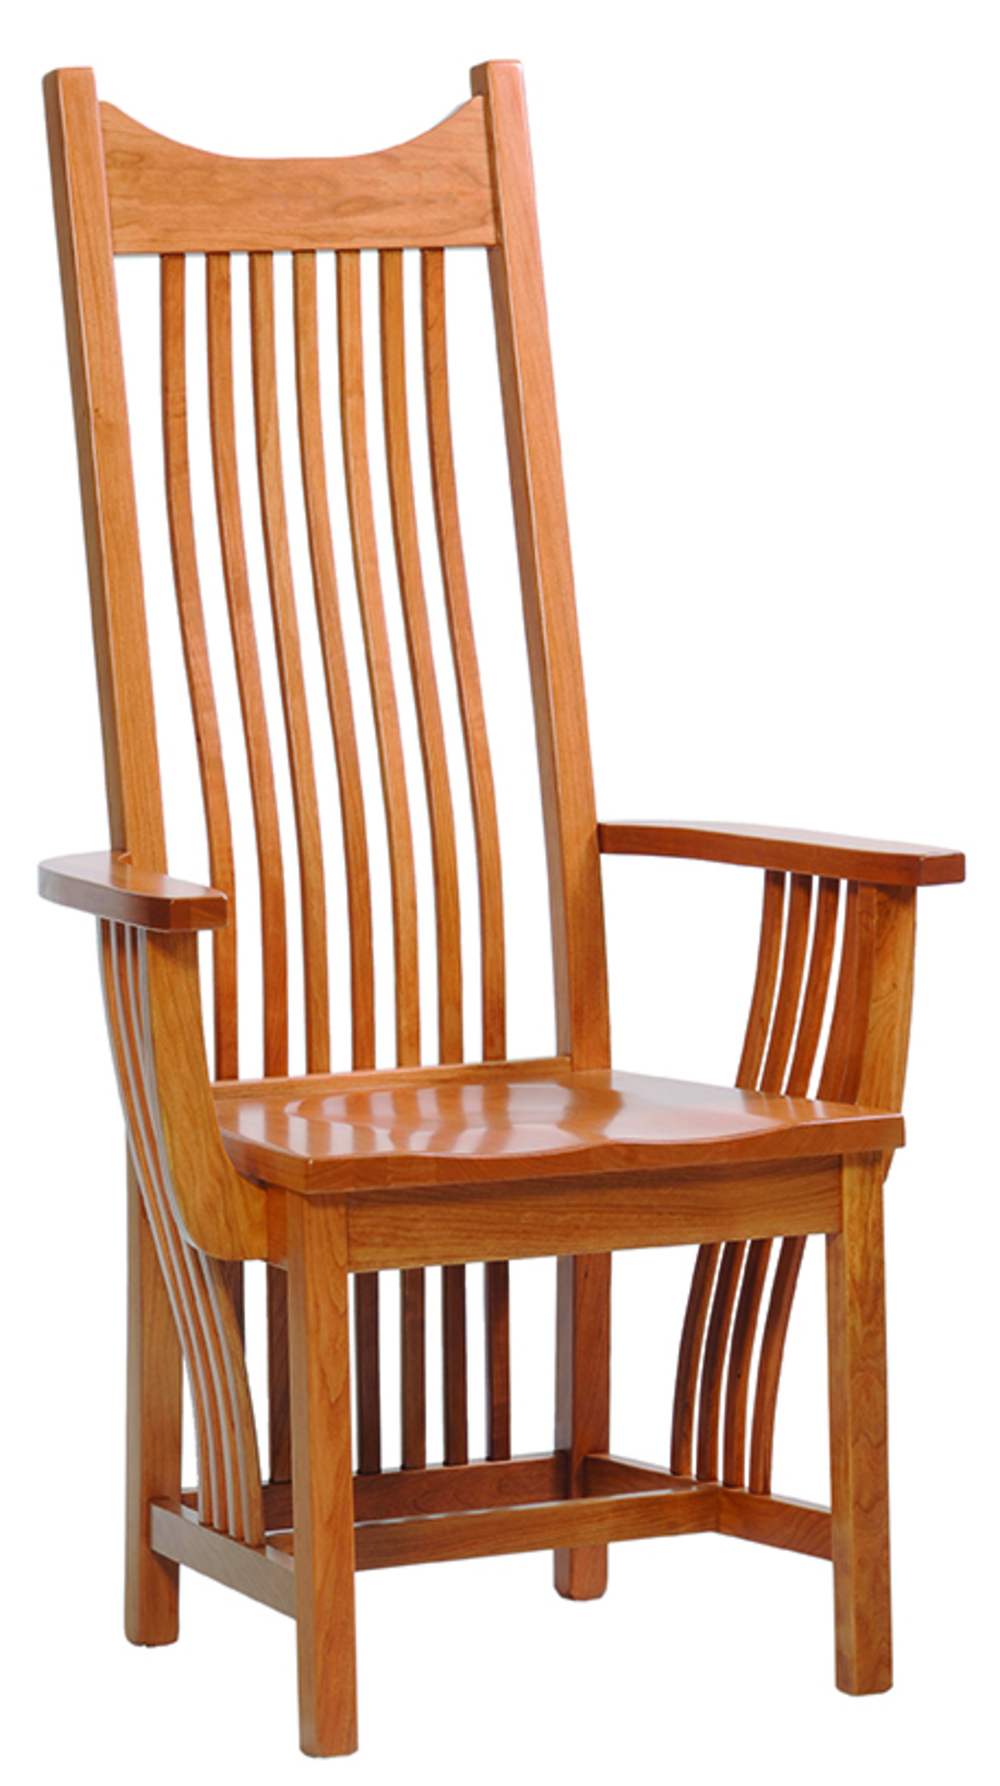 Canal Dover - Classic Mission Arm Chair